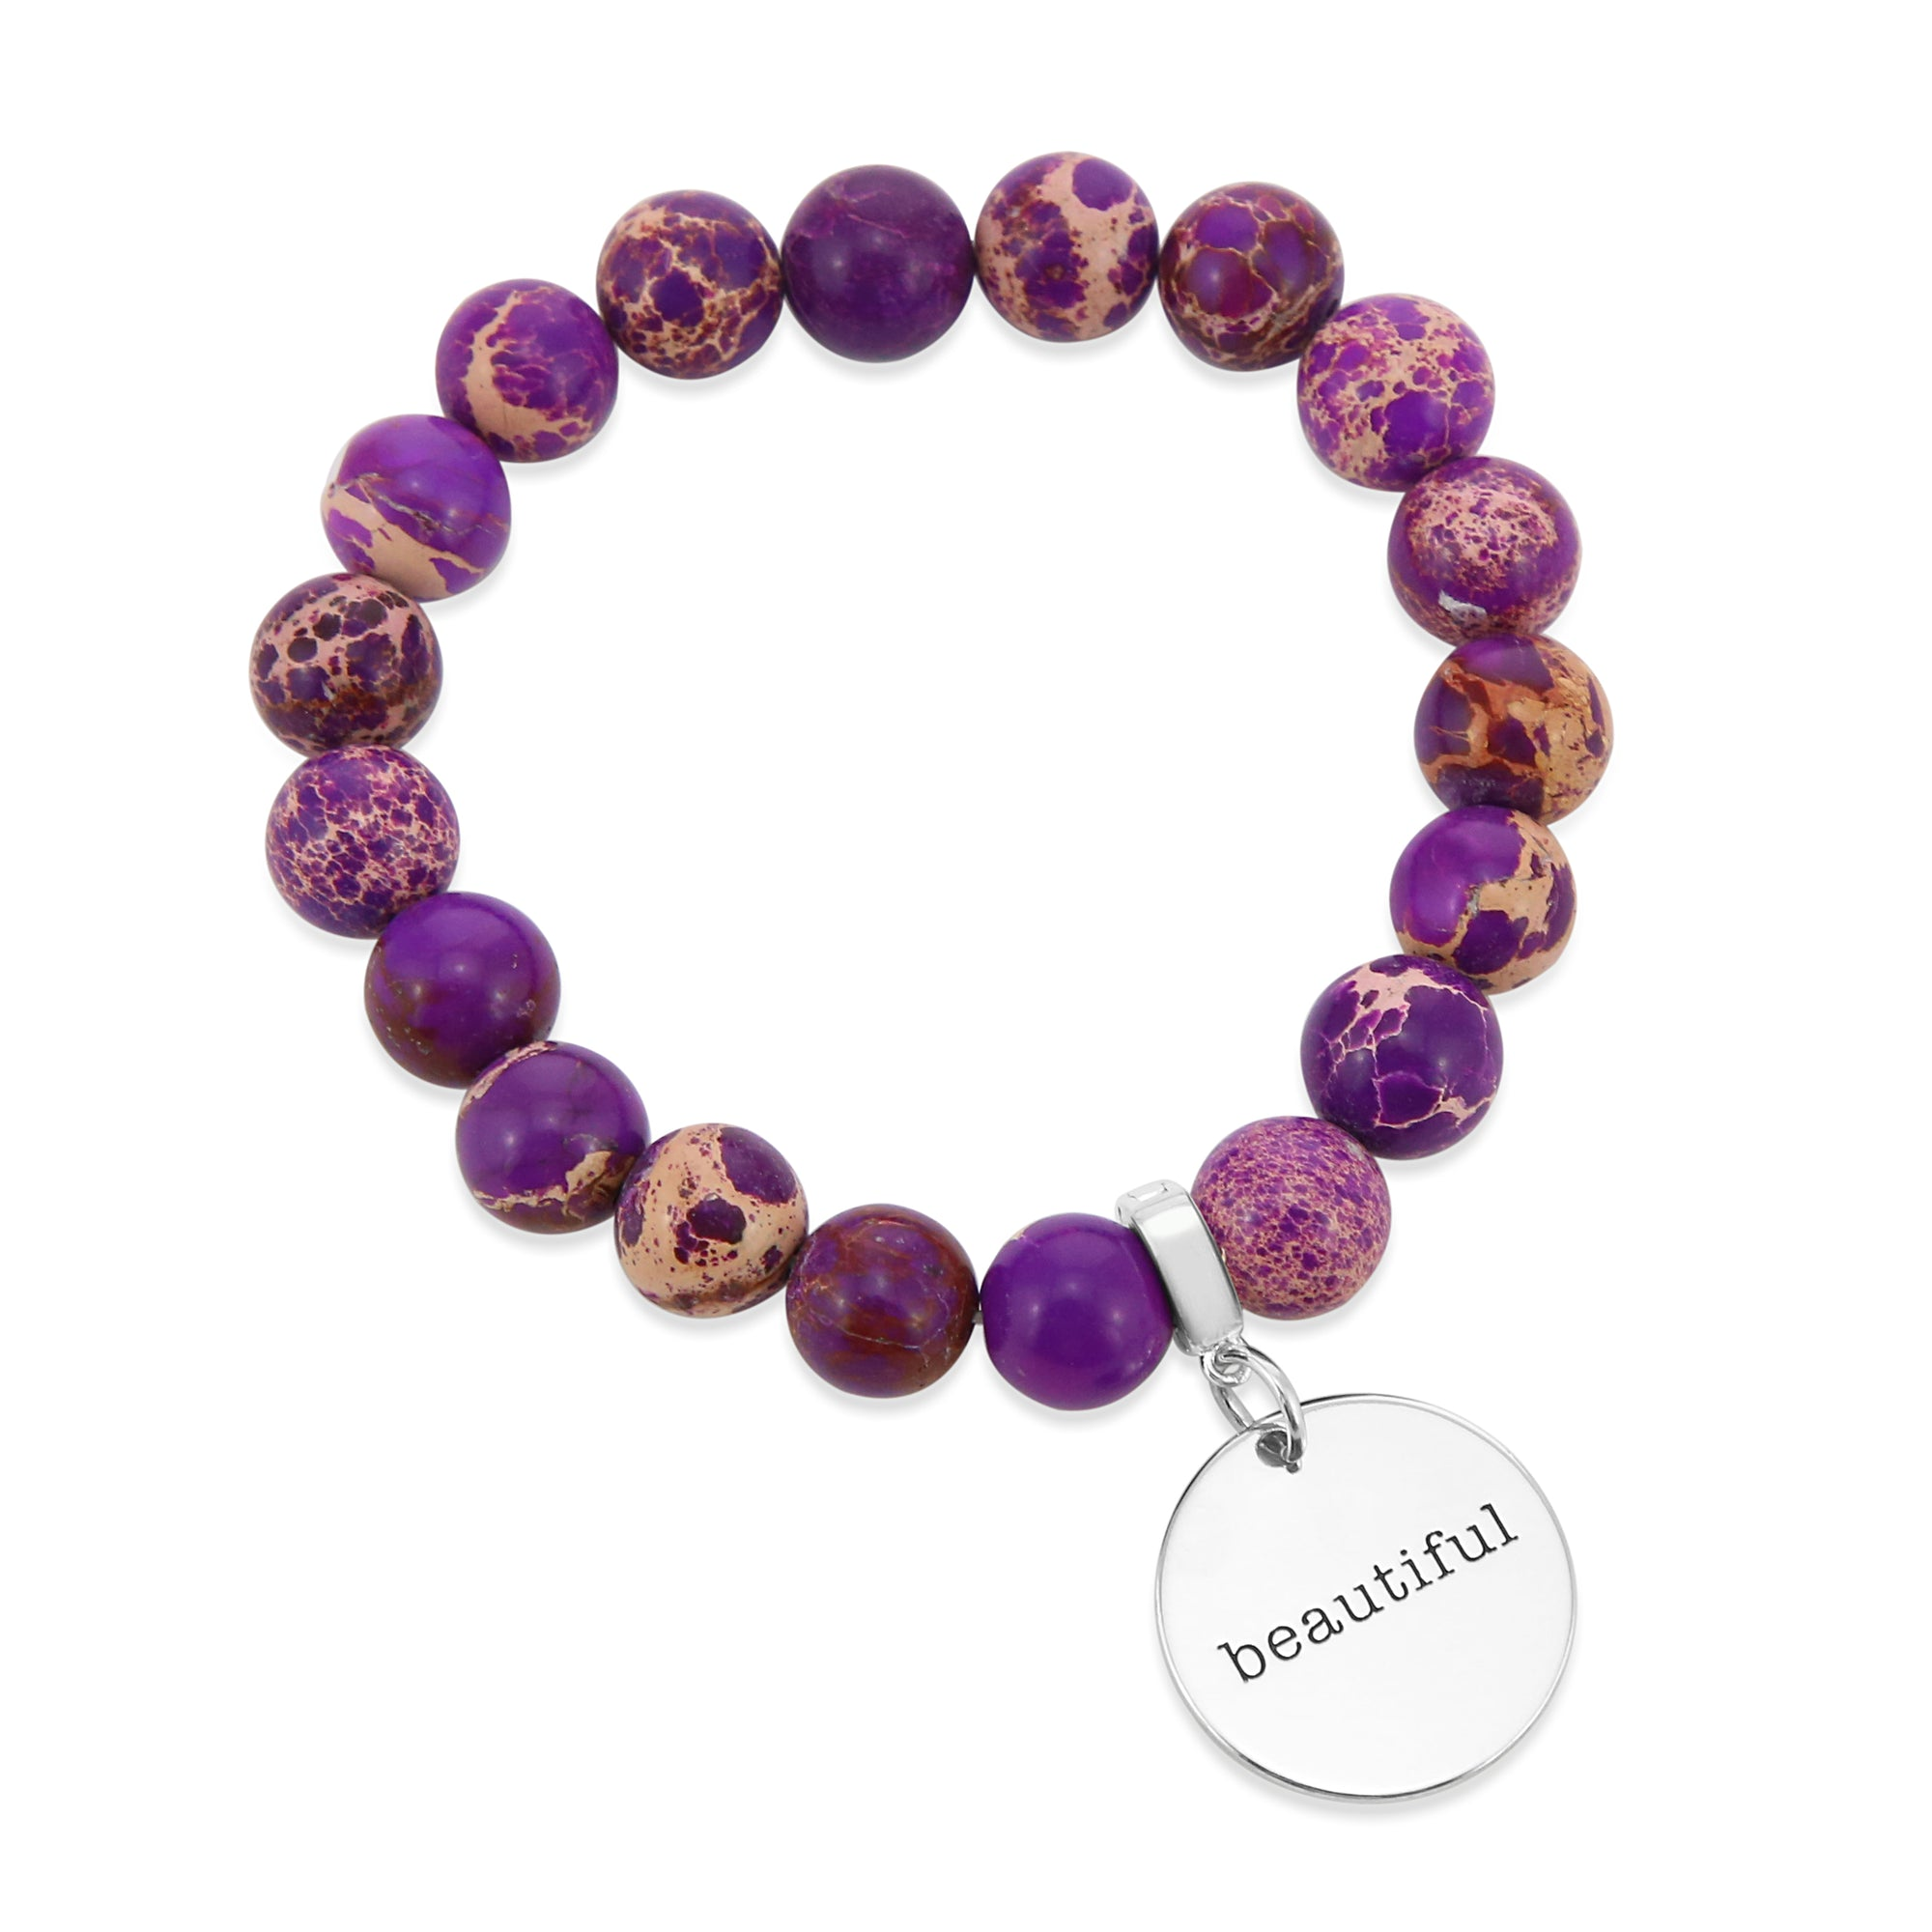 Precious Stone Bracelet ' BEAUTIFUL ' Imperial Jasper 10MM BEADS - Purple Paradise (11535)